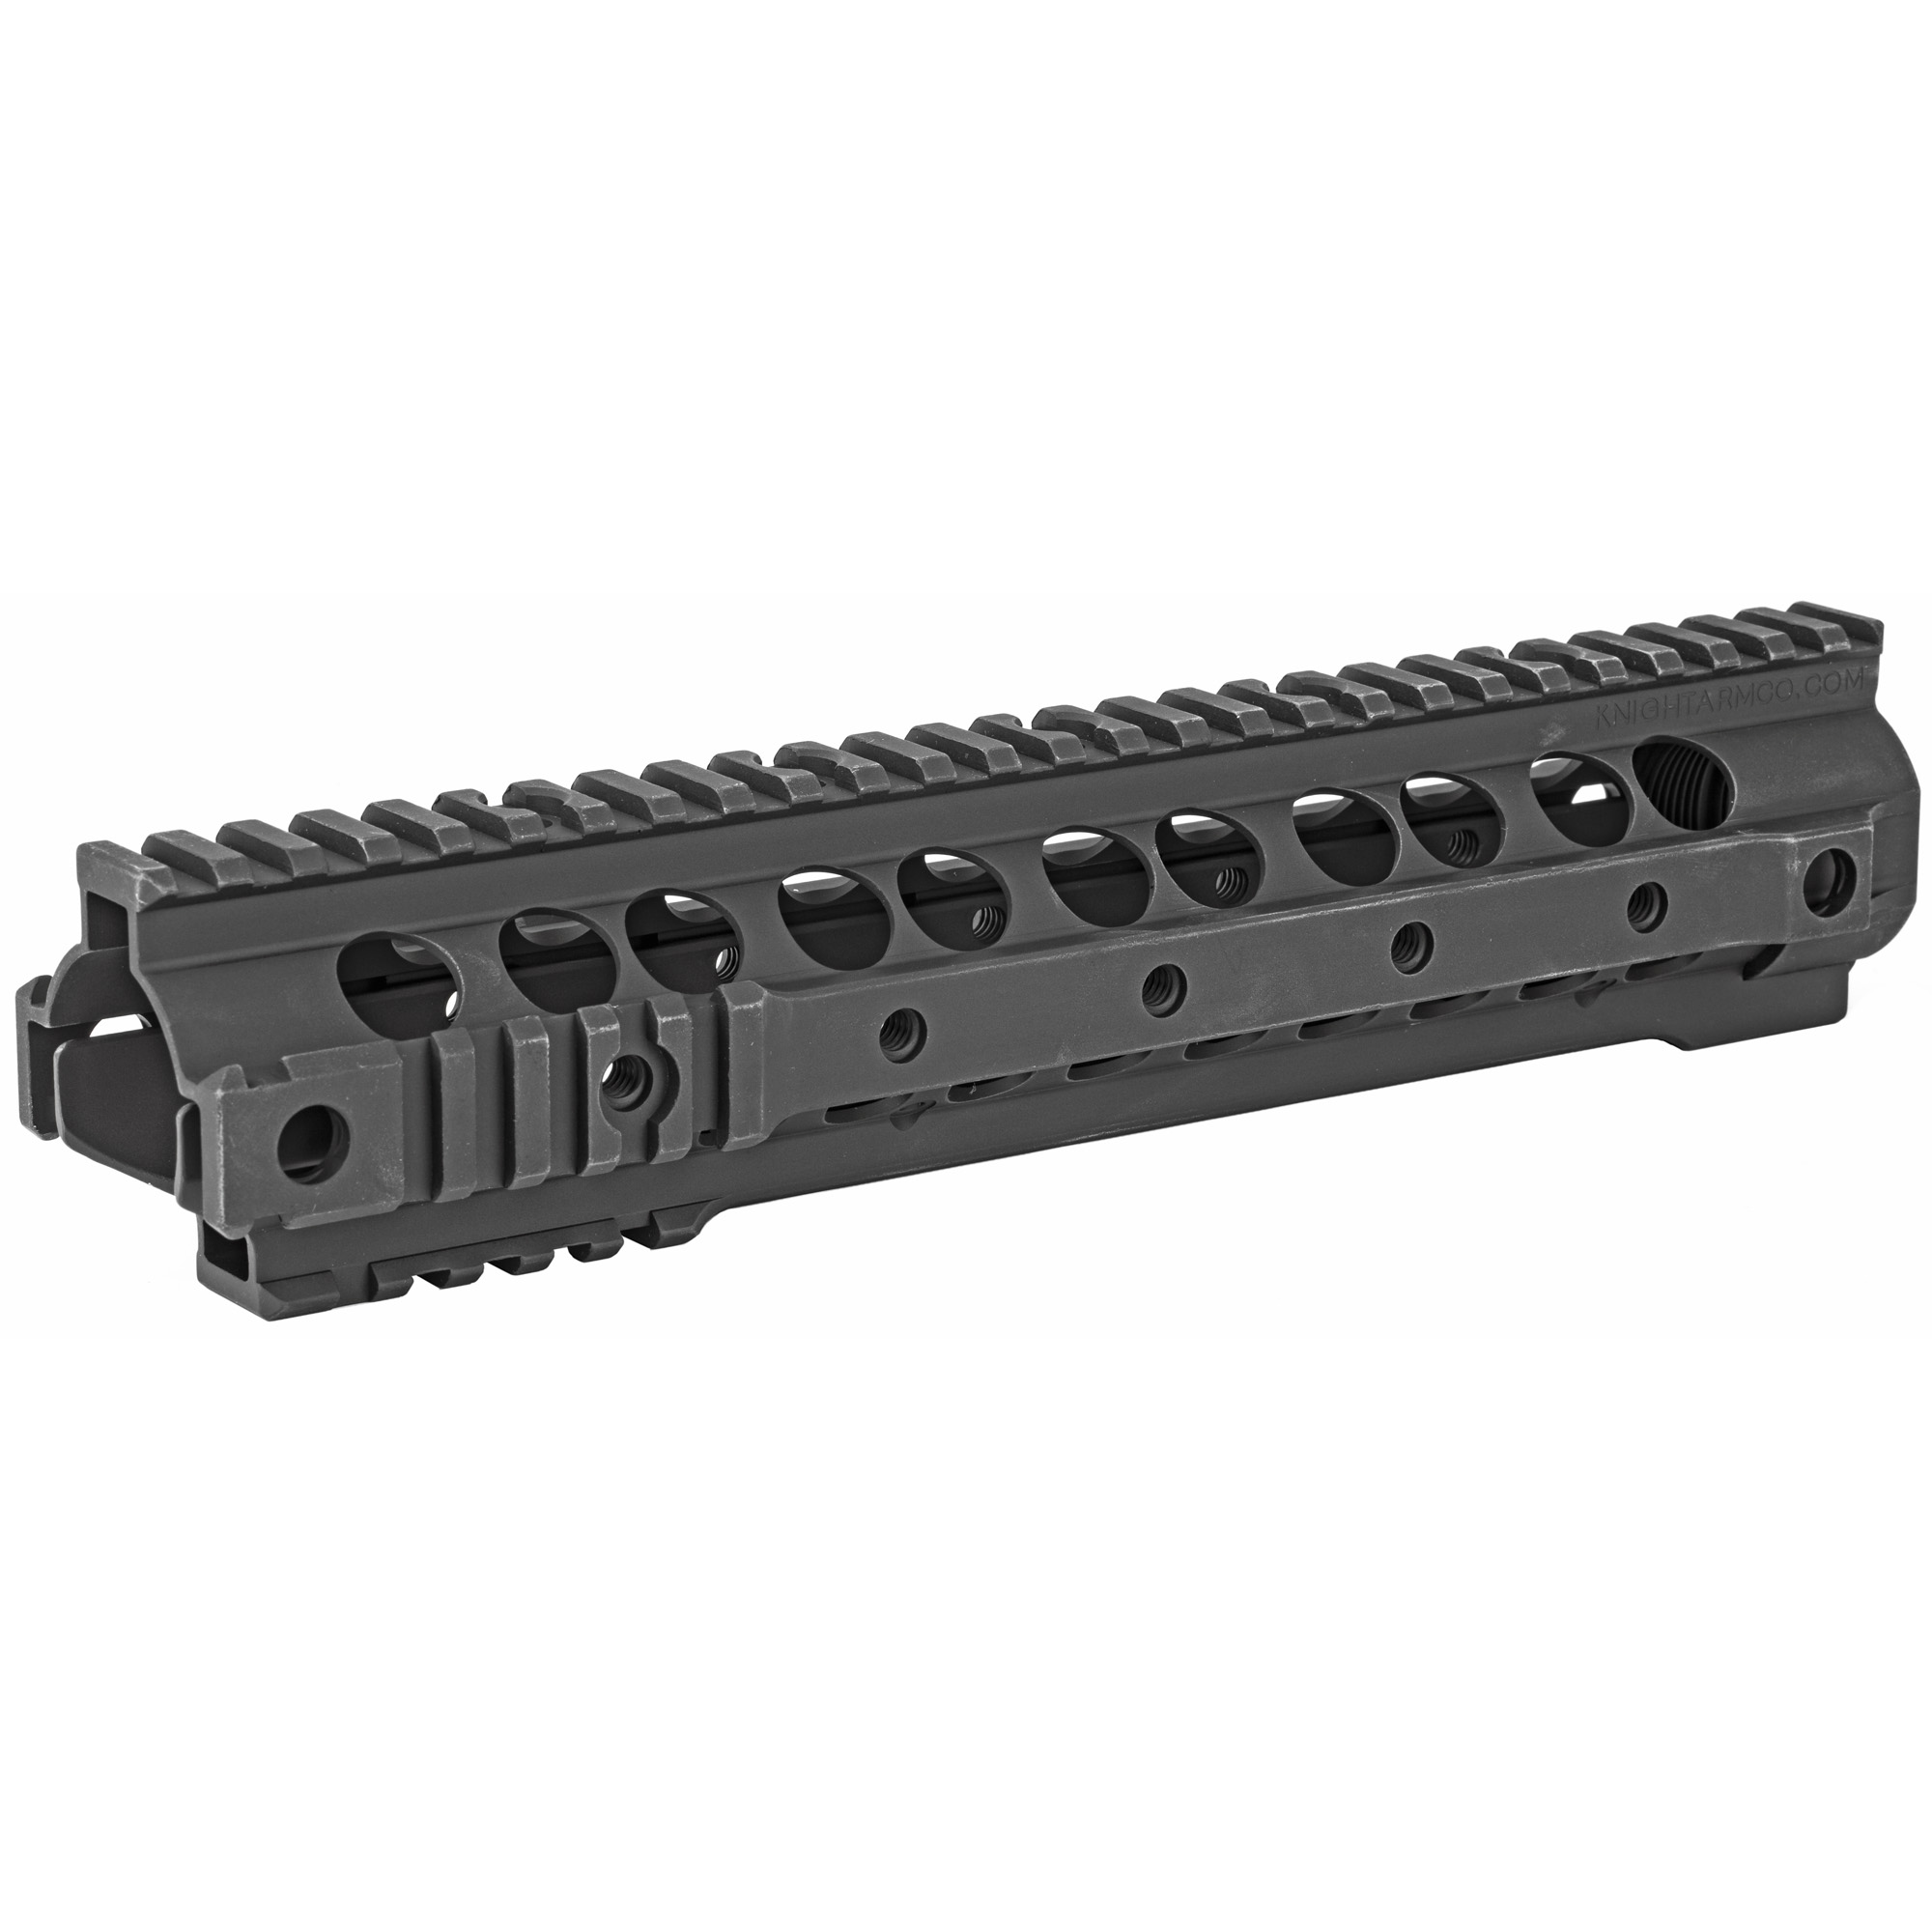 """Knights Armament Co.'s URX 3.1 10.75"""" Rail Forend Assembly is a free floating"""" fully modular replacement forend for the AR-15 platform. Unlike traditional quad rail designs"""" the URX 3.1 incorporates short sections of M1913 Picatinny rail at its front and rear ends for mounting tactical accessories"""" eliminating the commonly unused sections of rail for reduced overall weight and a more comfortable grip. A total of 4 integral QD sling swivel sockets are provided for ambidextrous sling compatibility. This URX 3.1 rail requires that the rifle have a carbine or mid length gas system and a low profile gas block. Disassembly of the rifle's gas system and removal of the factory barrel nut will be necessary. This forend uses a proprietary barrel nut that MUST be installed using a KAC URX Barrel Nut Wrench (not included). For AR-15/SR-15 based platforms only; not compatible with SR-25 variants. Installation instructions"""" barrel nut and hardware are included."""